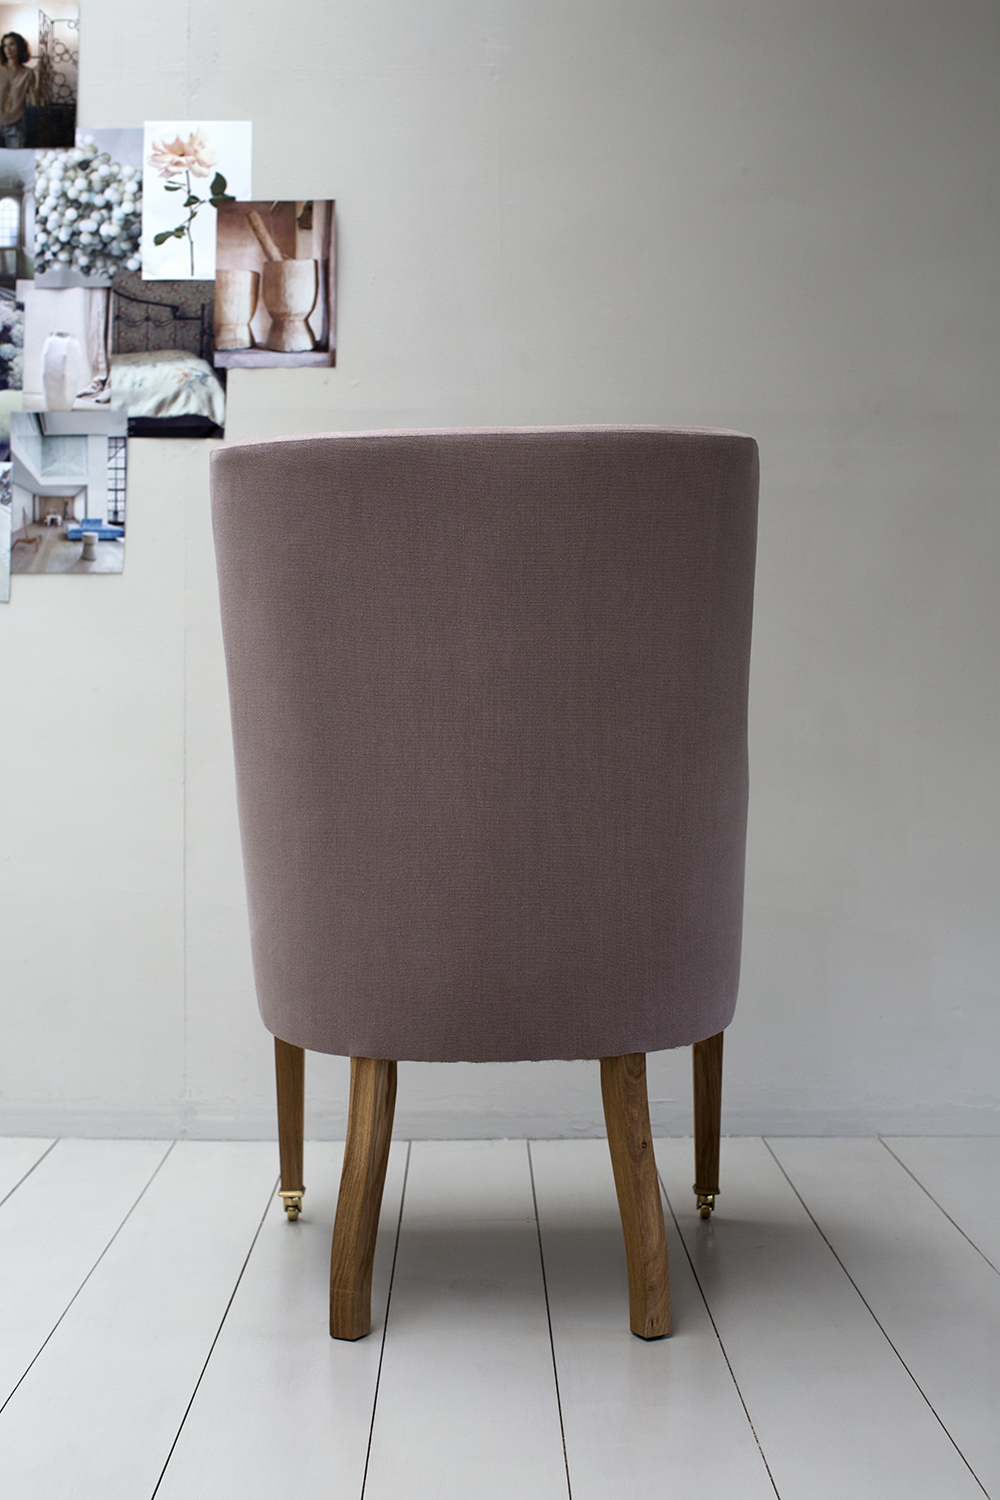 Atelier Ellis - The Tall Mama Chair